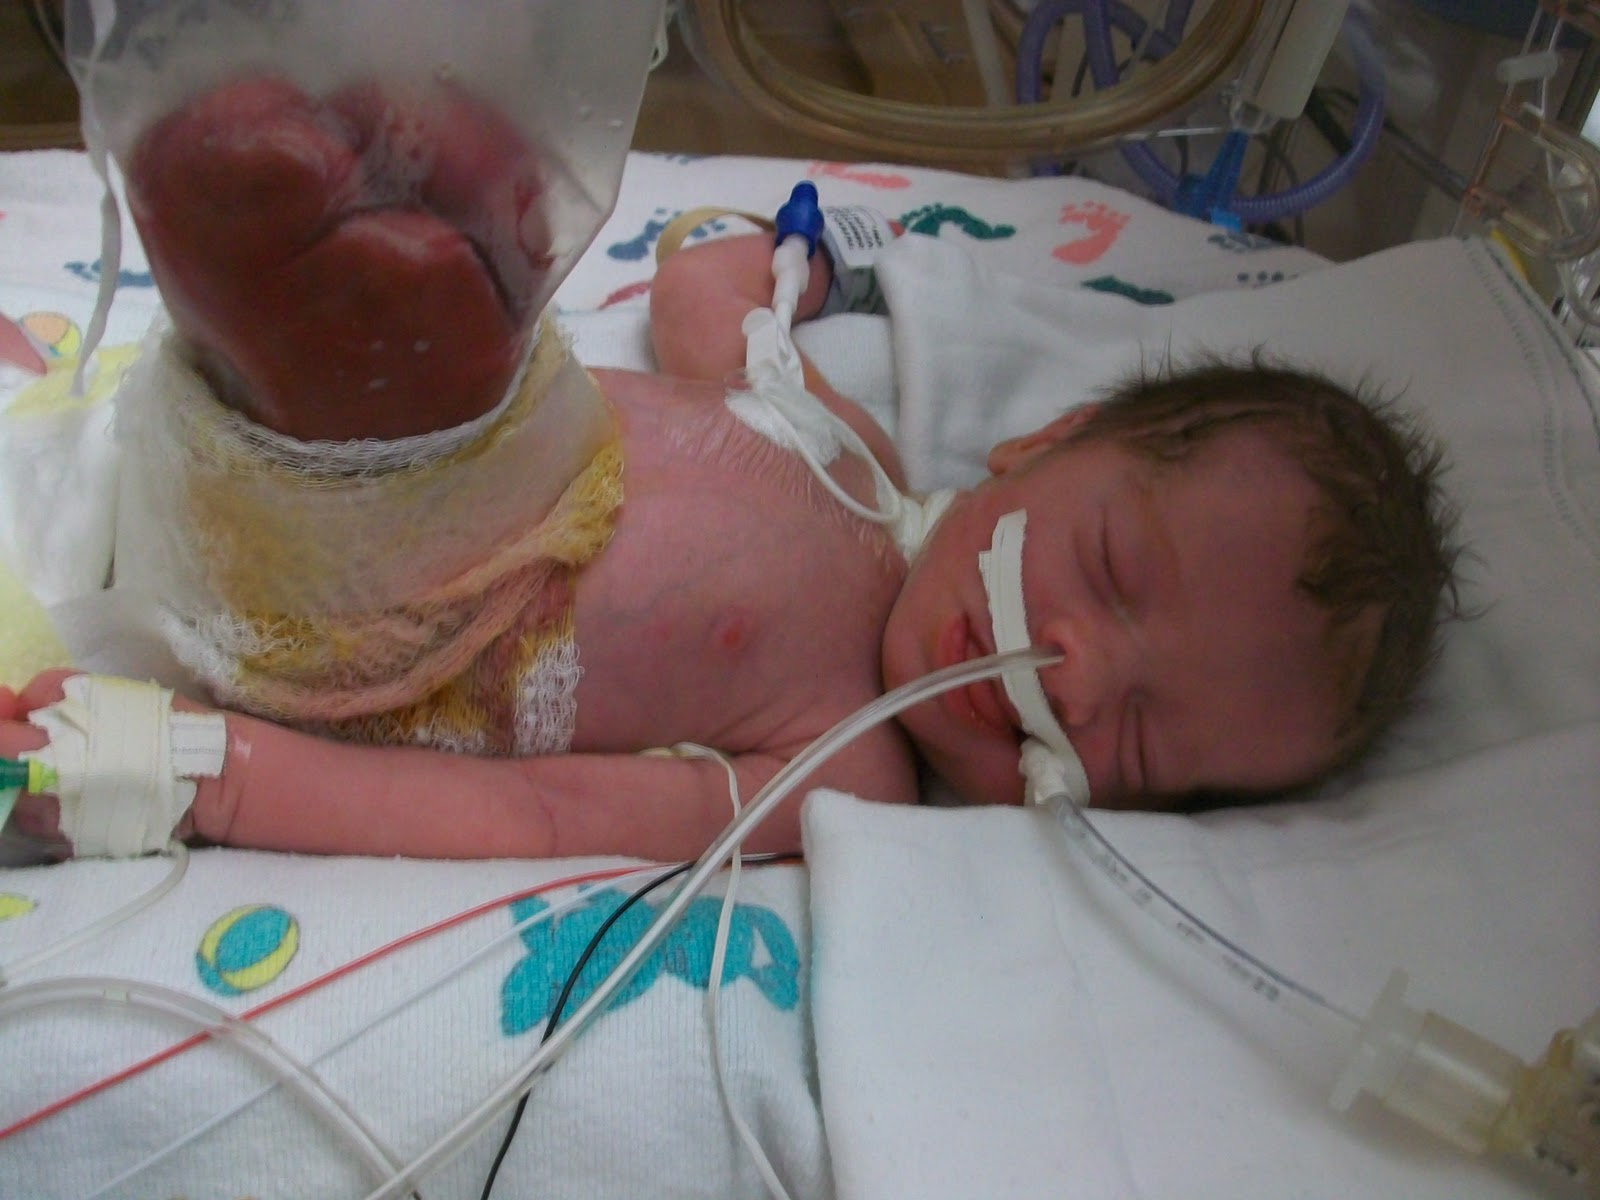 Gastroschisis Matters Of The Heart And Home